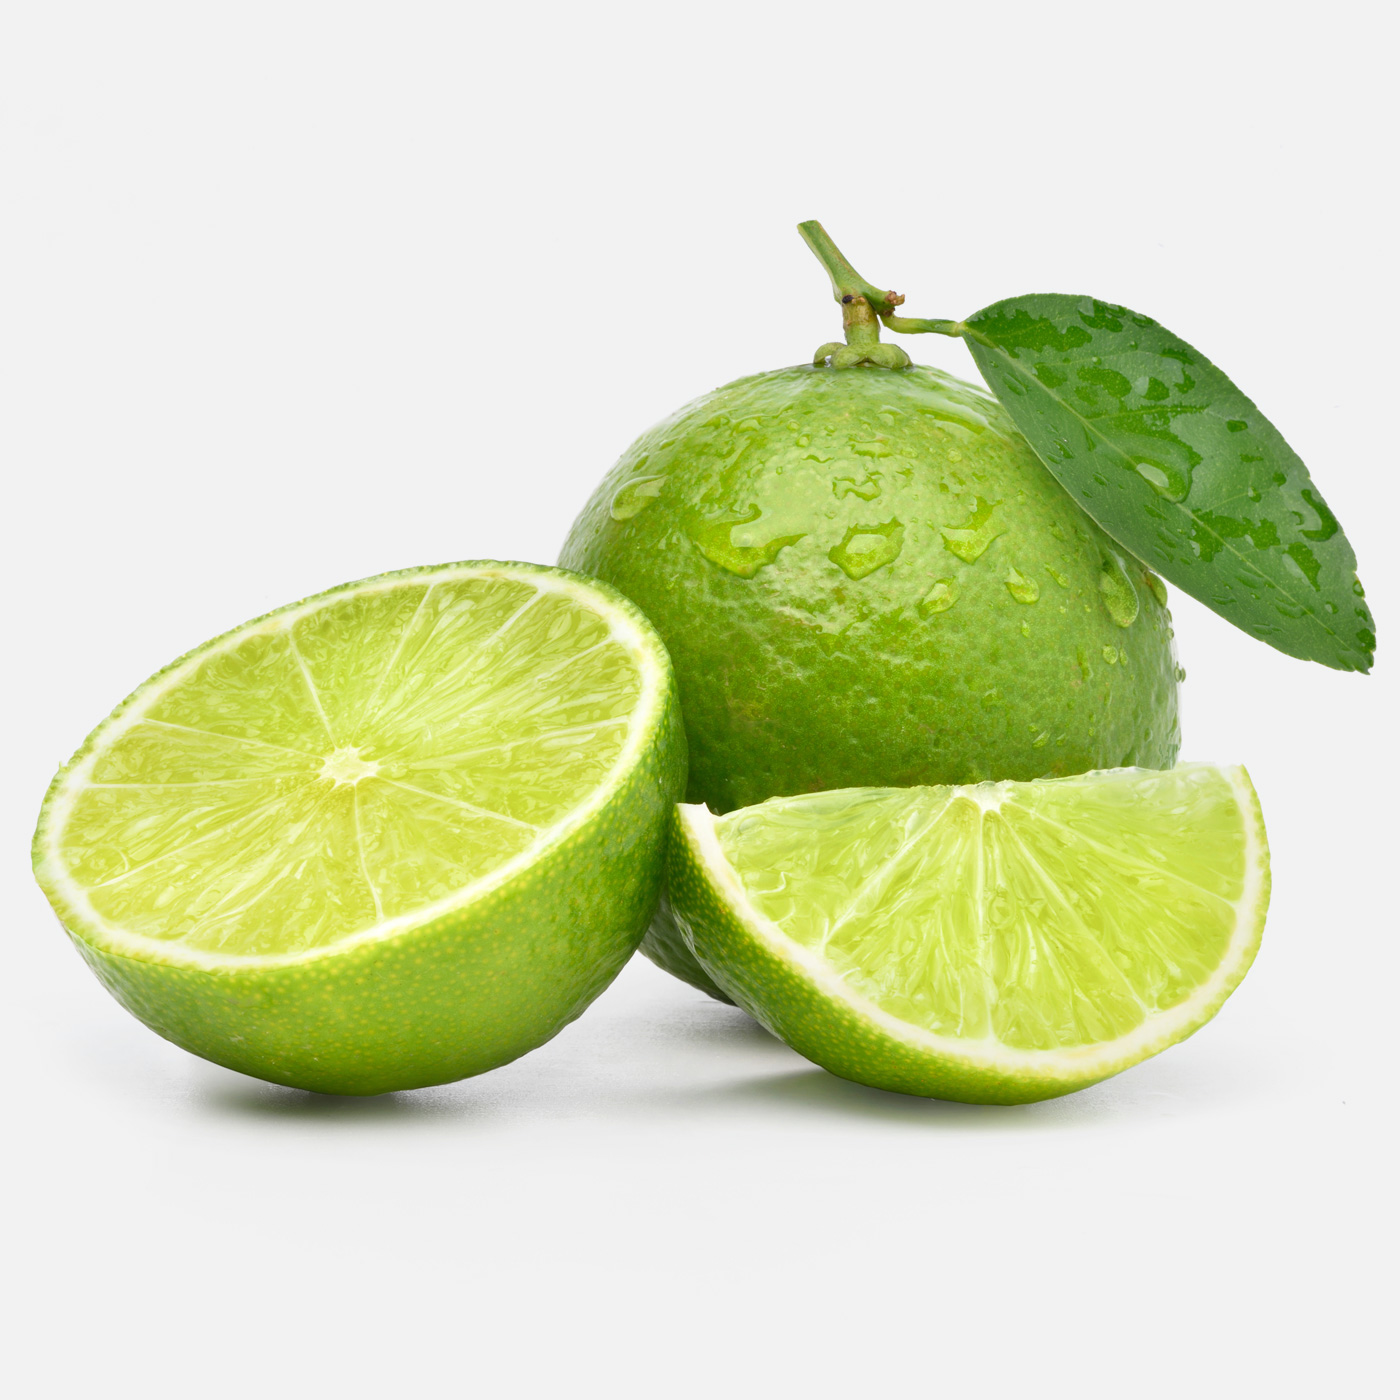 Using limes, unlock the possibilities for flavours, aromas and sweeteners in animal feed and pet food production